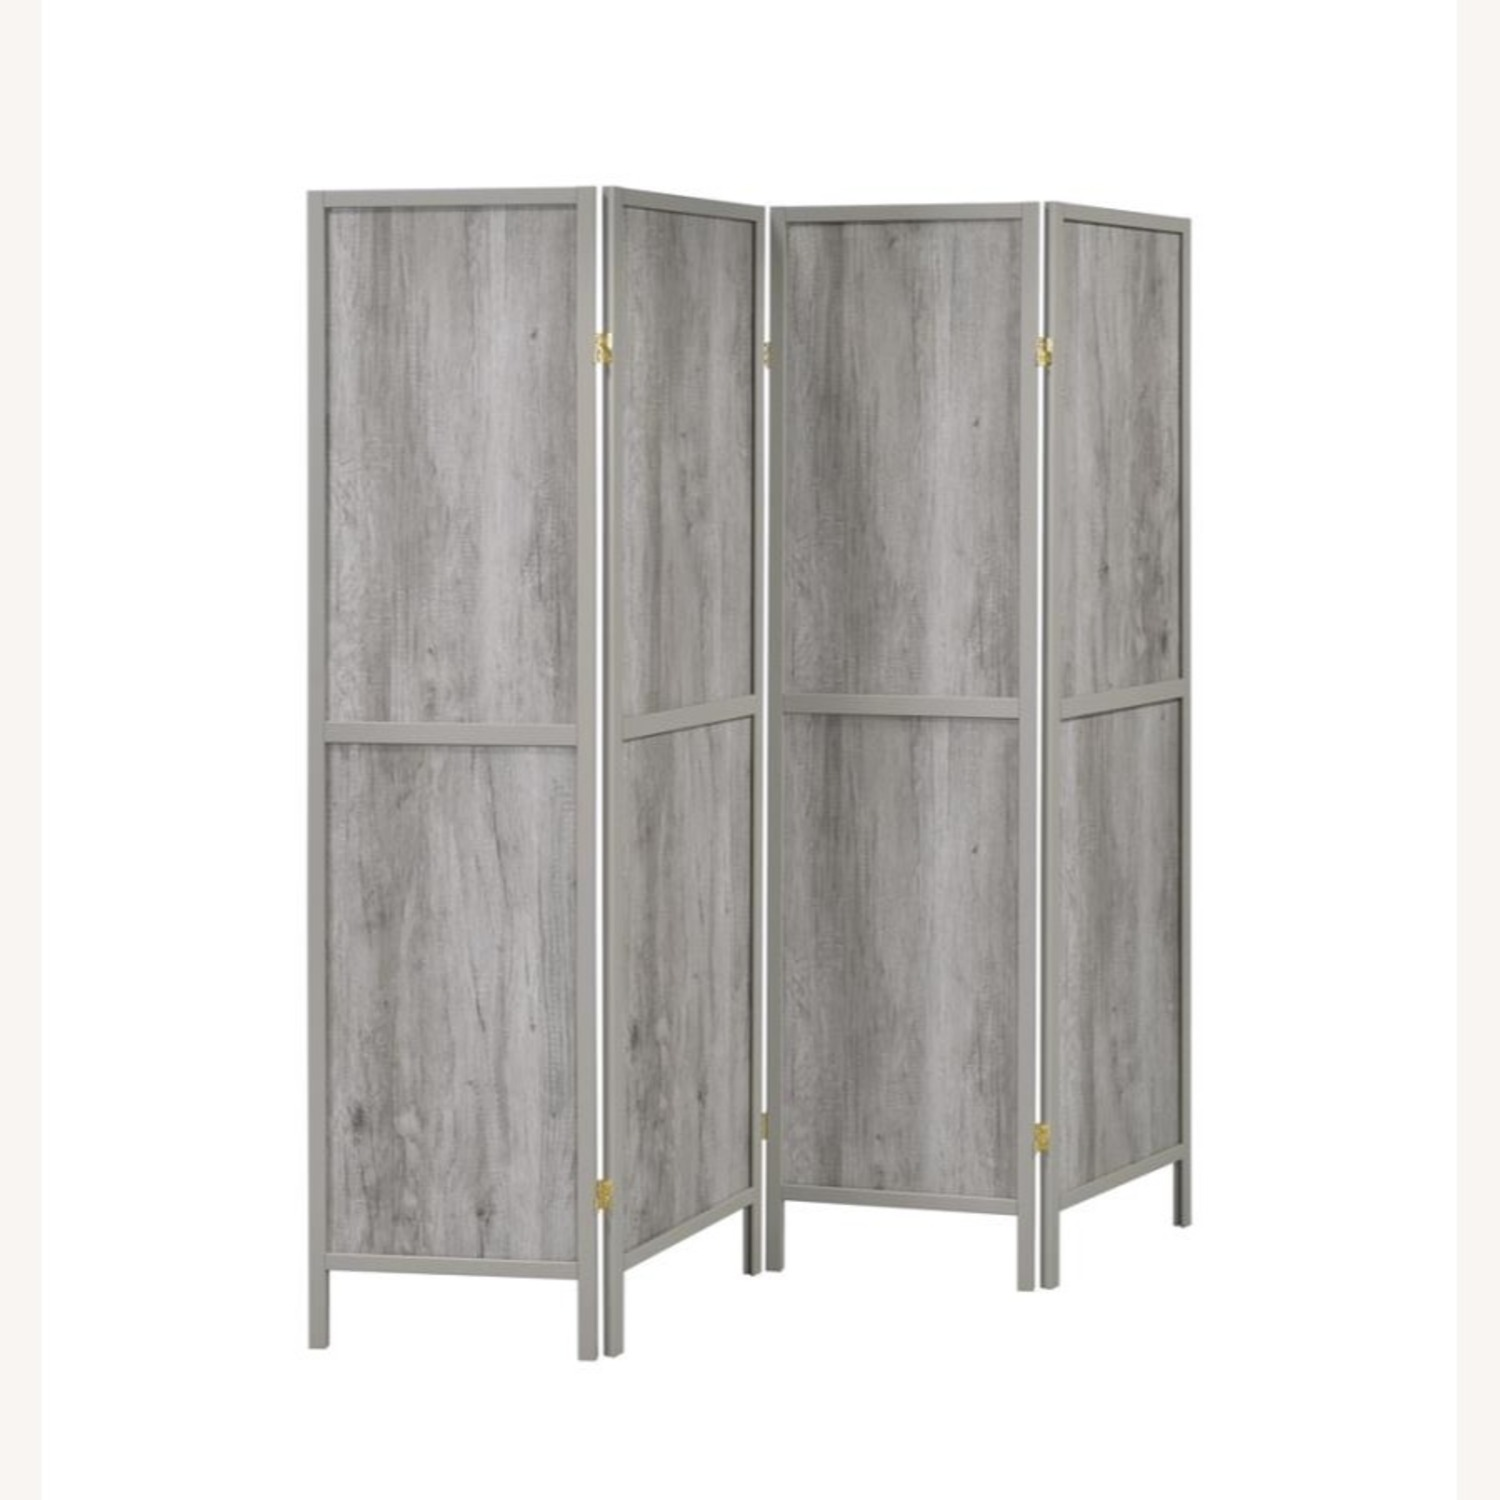 4-Panel Screen In Grey Driftwood & Grey Wood Frame - image-0